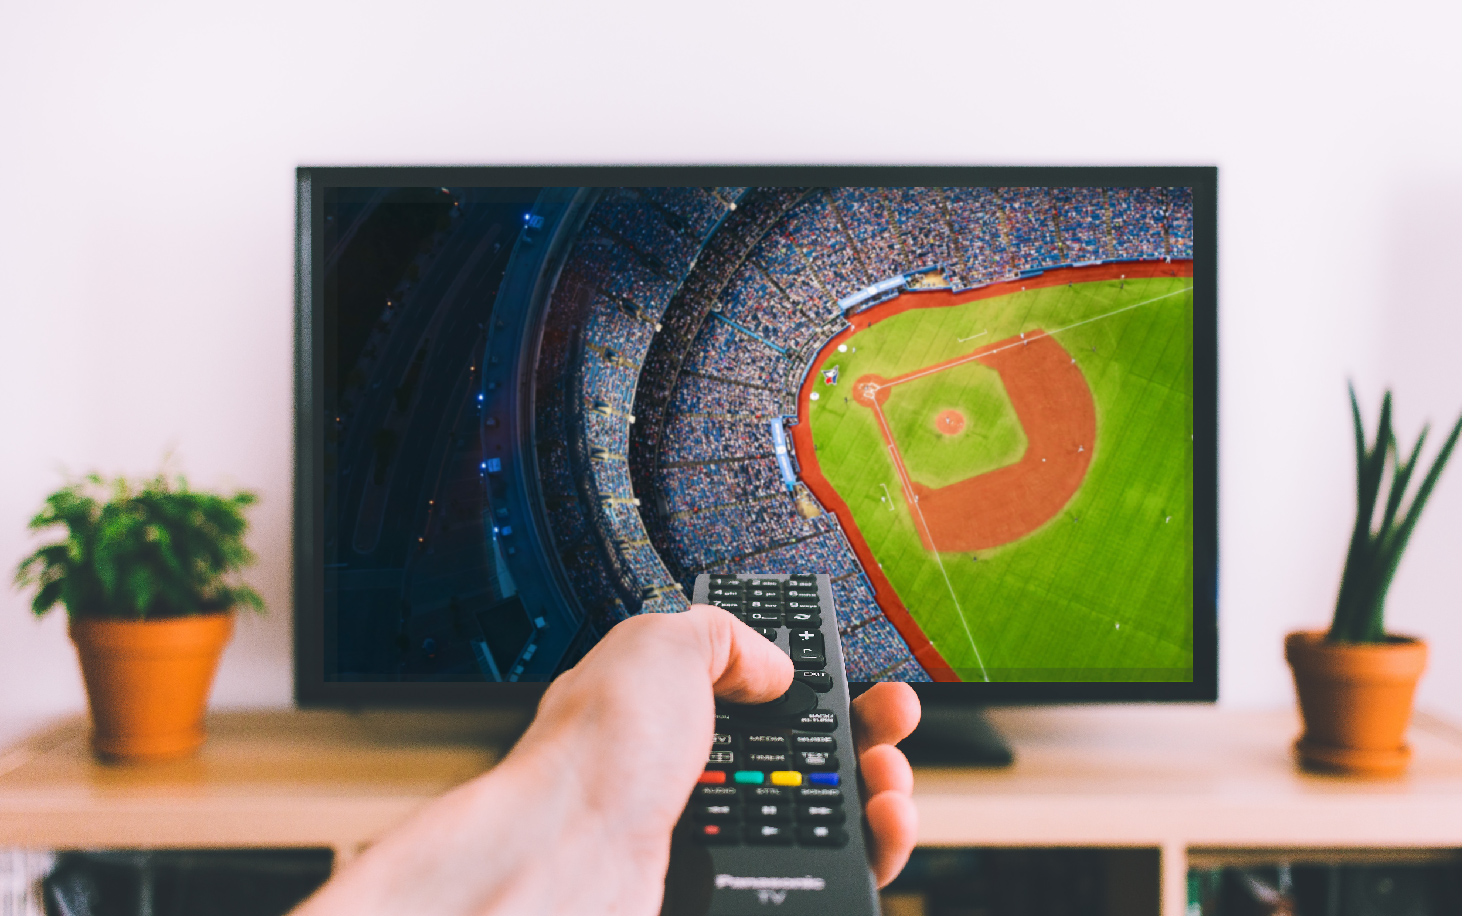 man holding a remote control while watching the baseball game